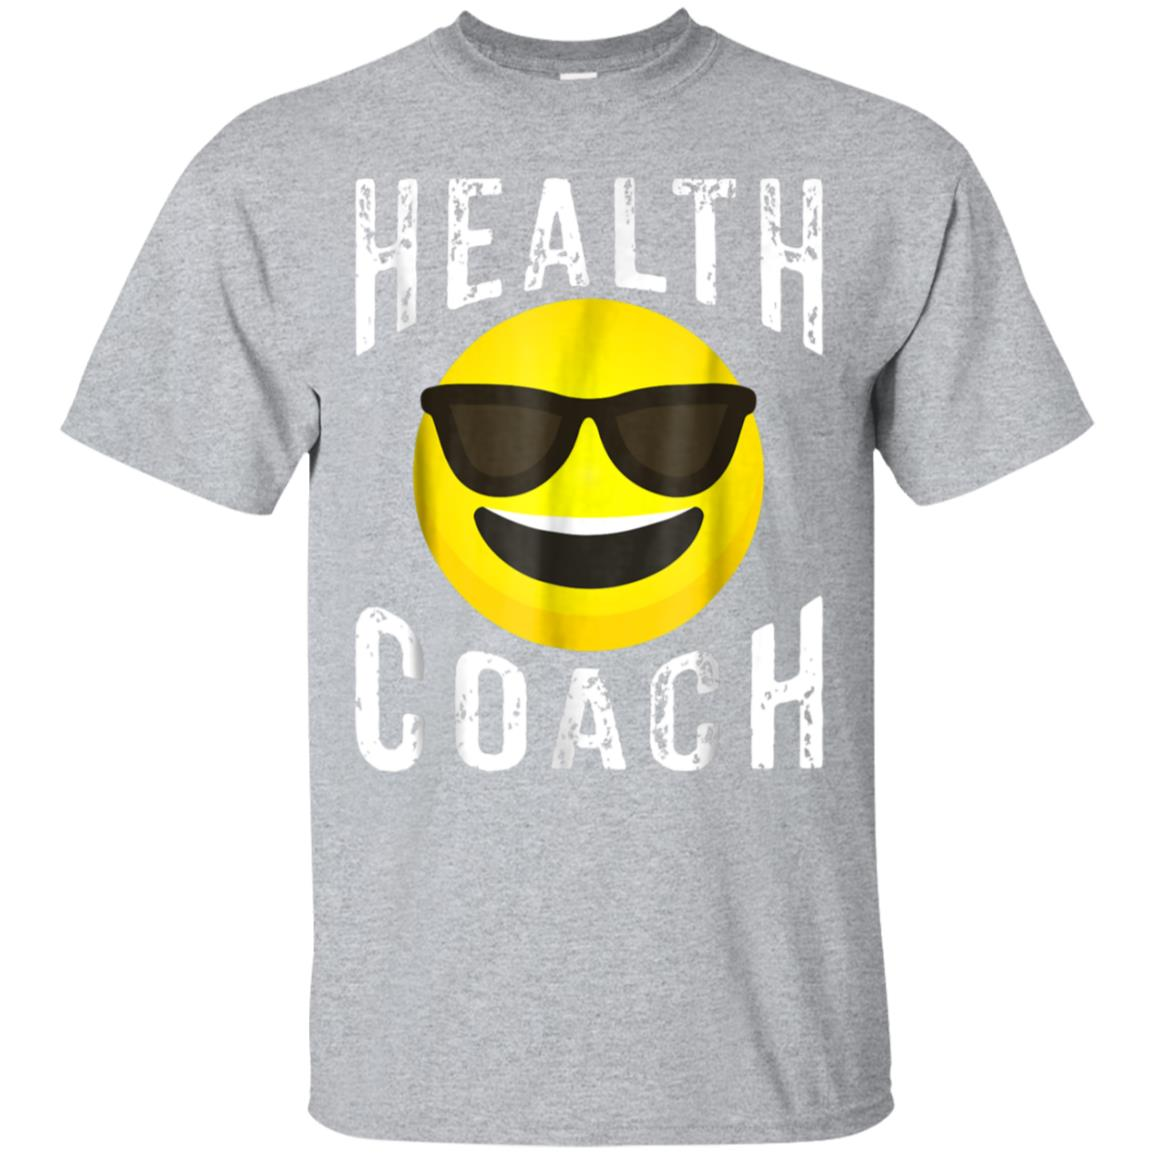 Health Coach Shirt - Health Coach Gift - Coach Apparel 99promocode